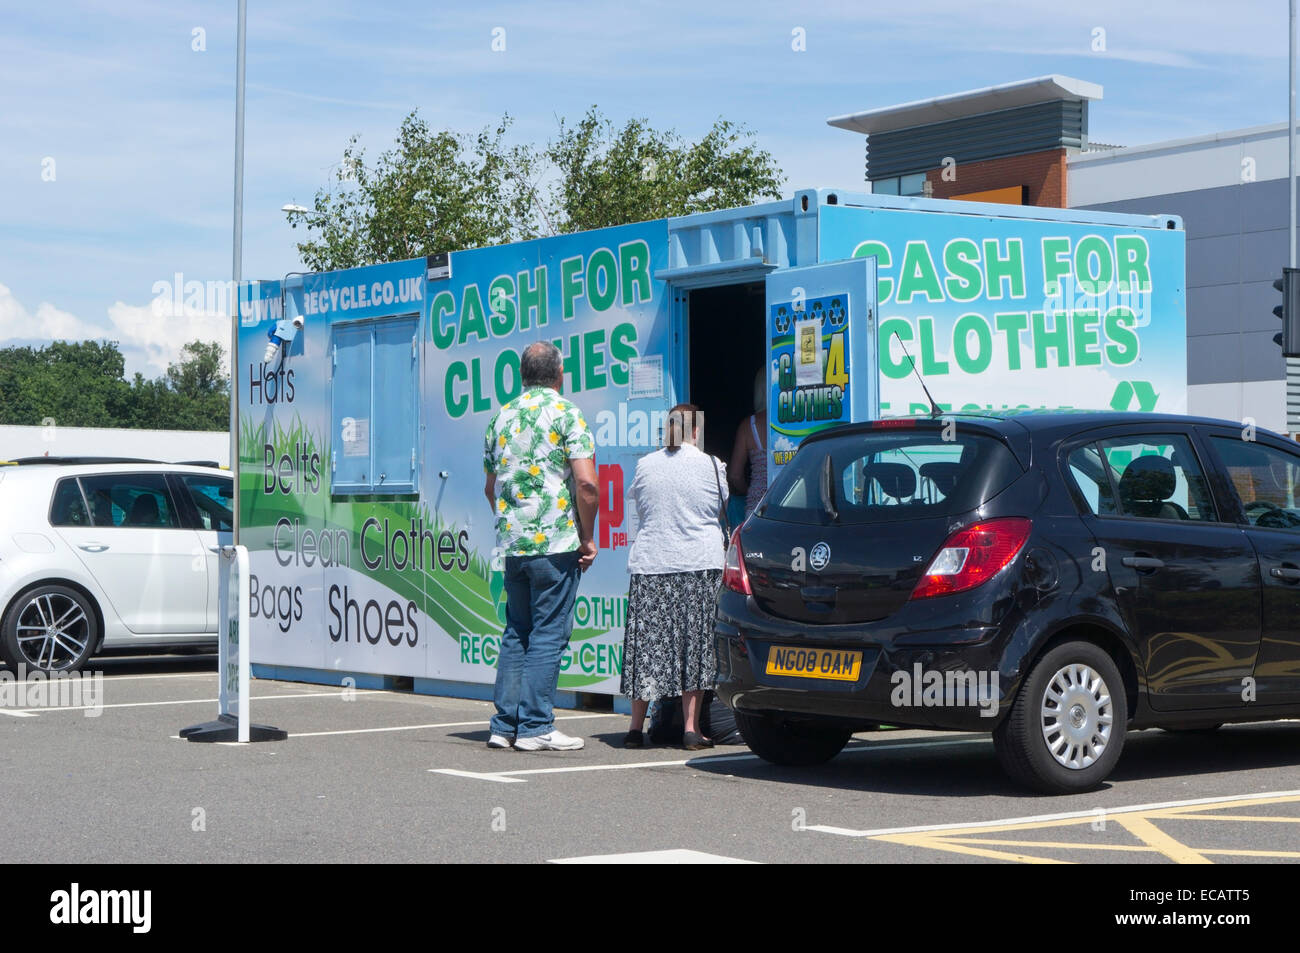 ea5d0892b8 People queueing at a Cash for Clothes recycling centre. - Stock Image